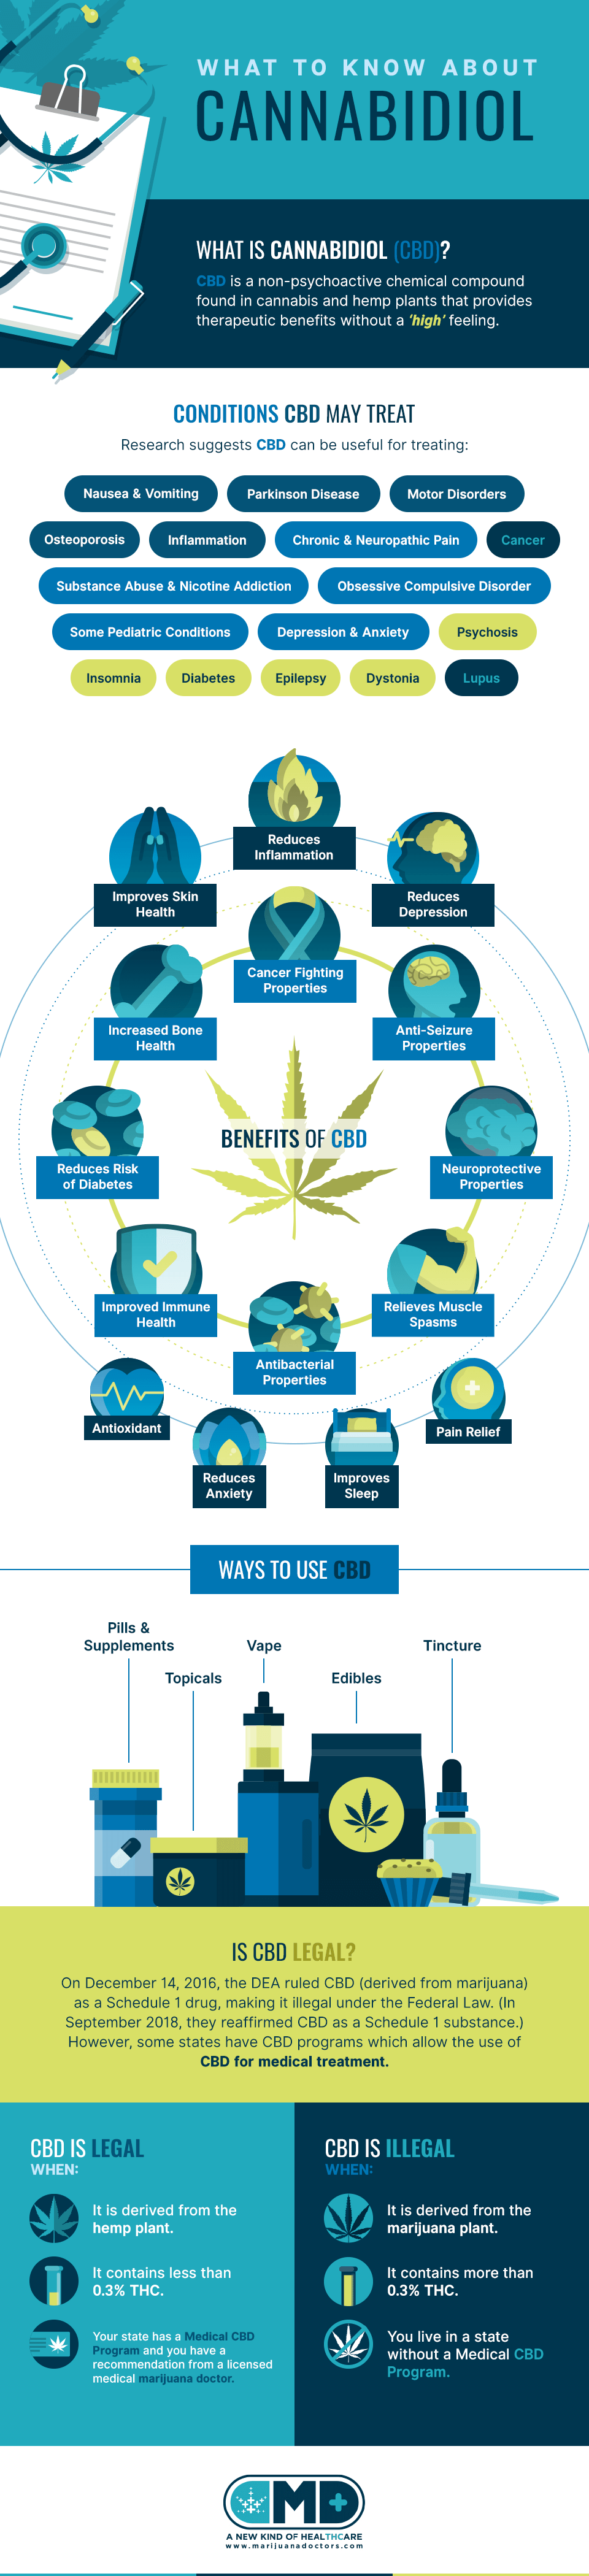 What Is CBD & What Can It Treat? | Cannabidiol Guide | Marijuana Doctors